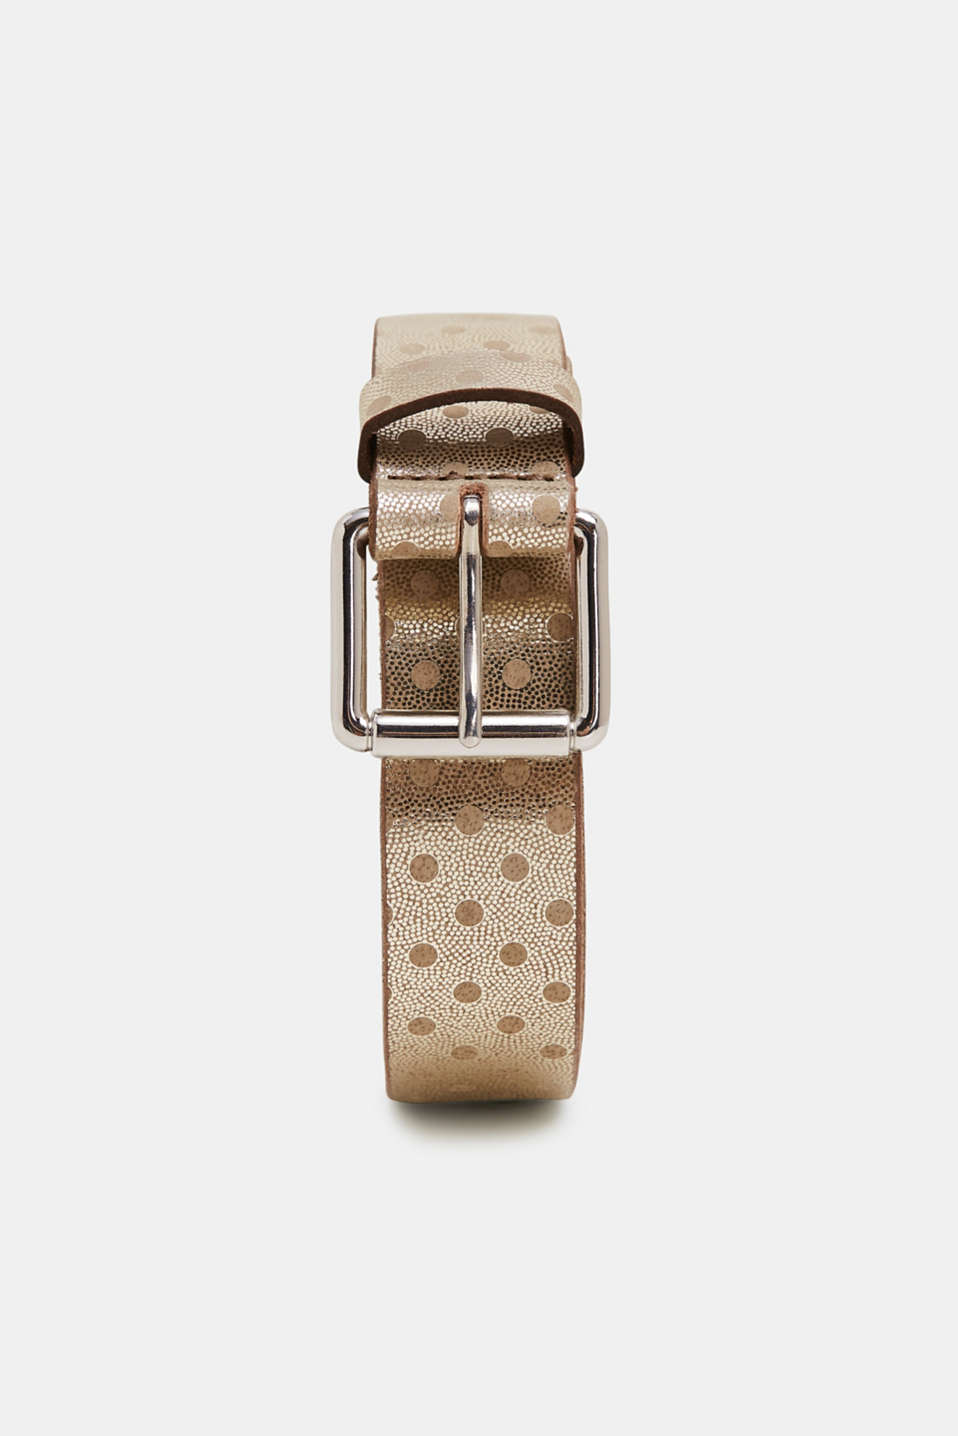 Esprit - Belt with metallic dots, made of leather